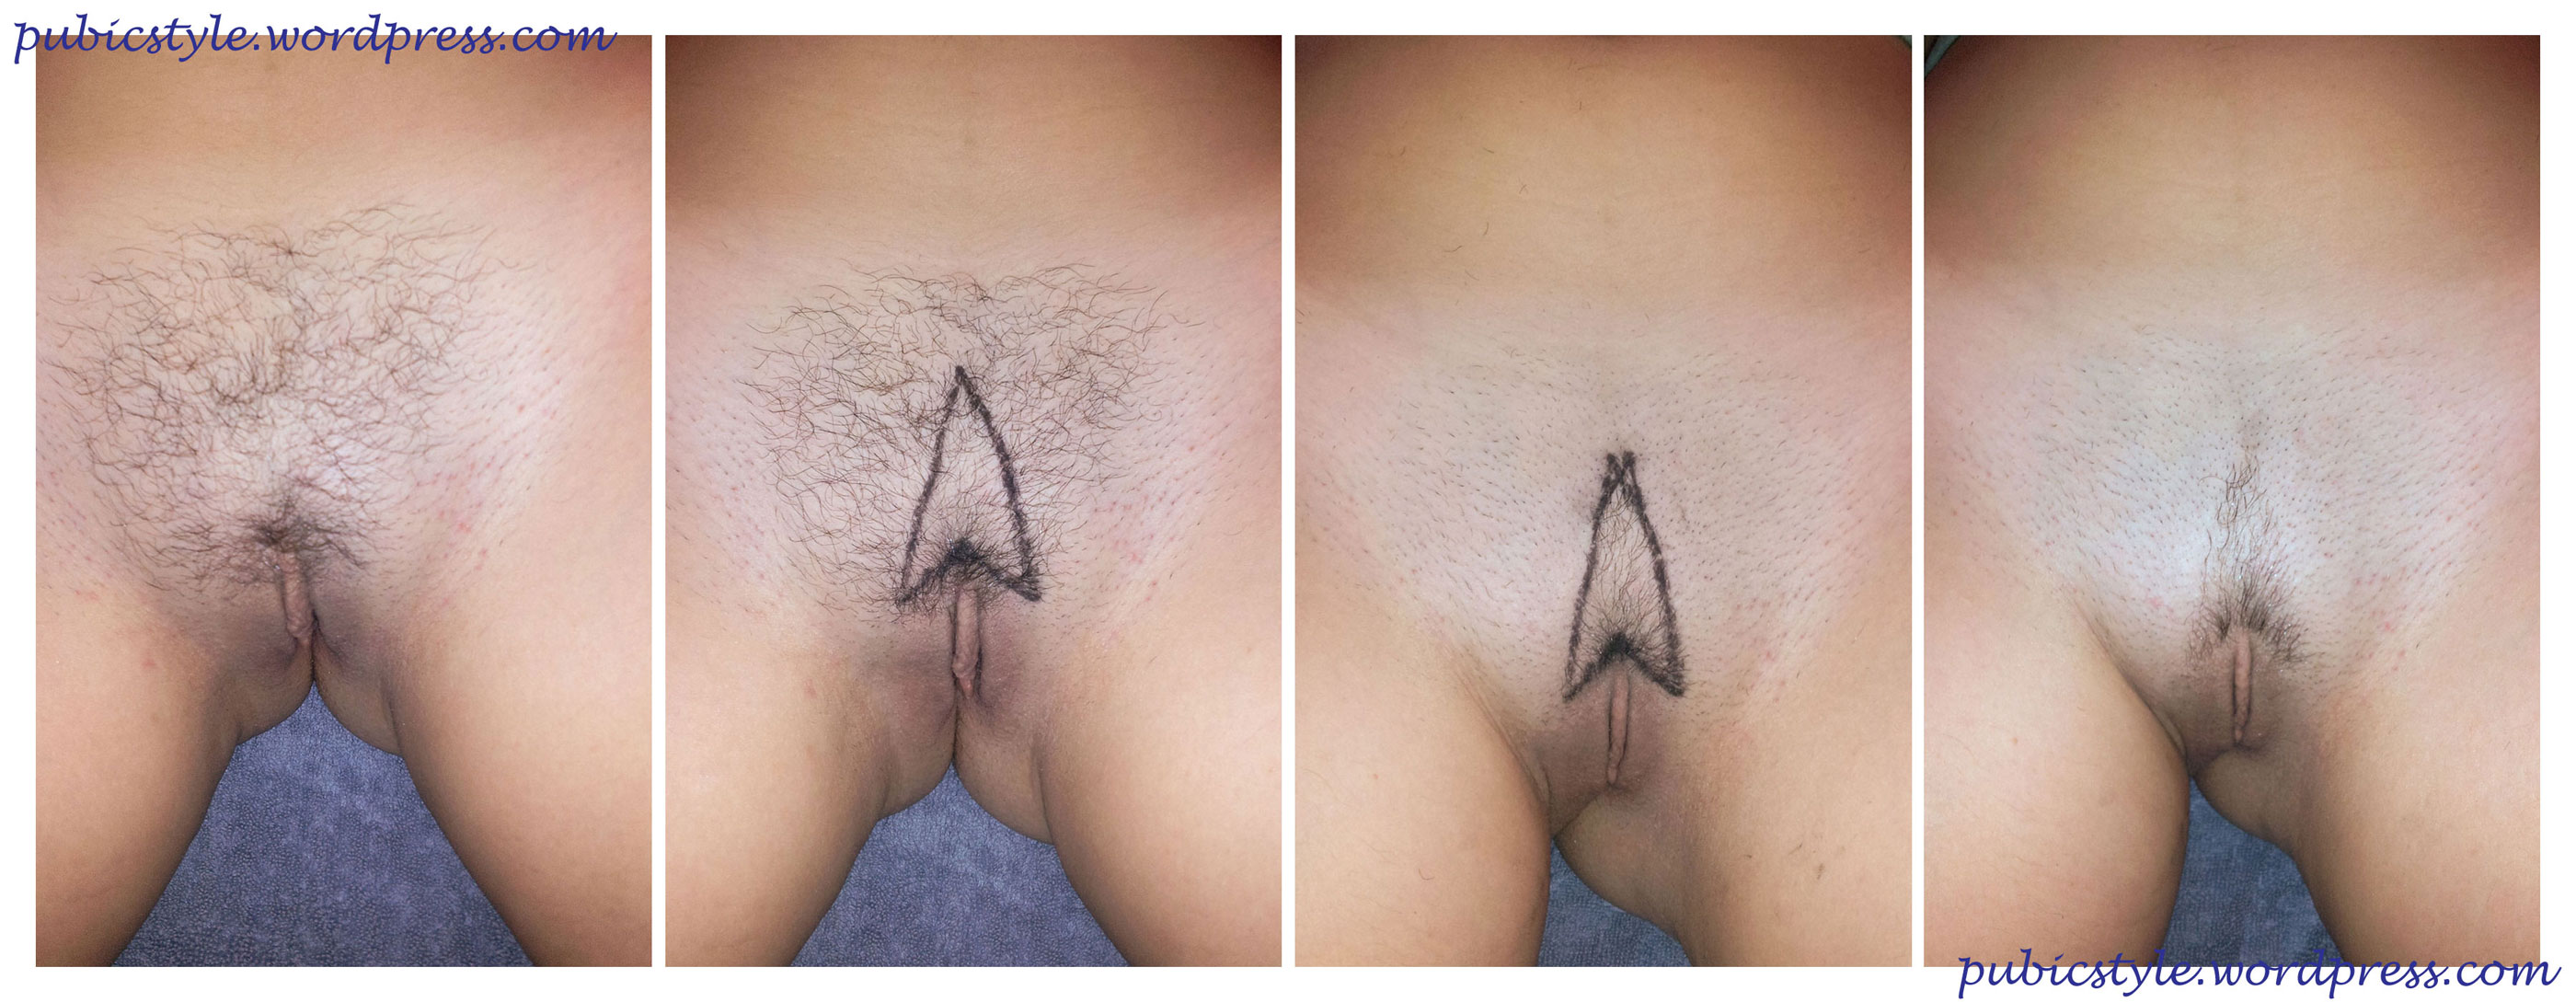 Dis erotic shaving of pussy hair goals she's